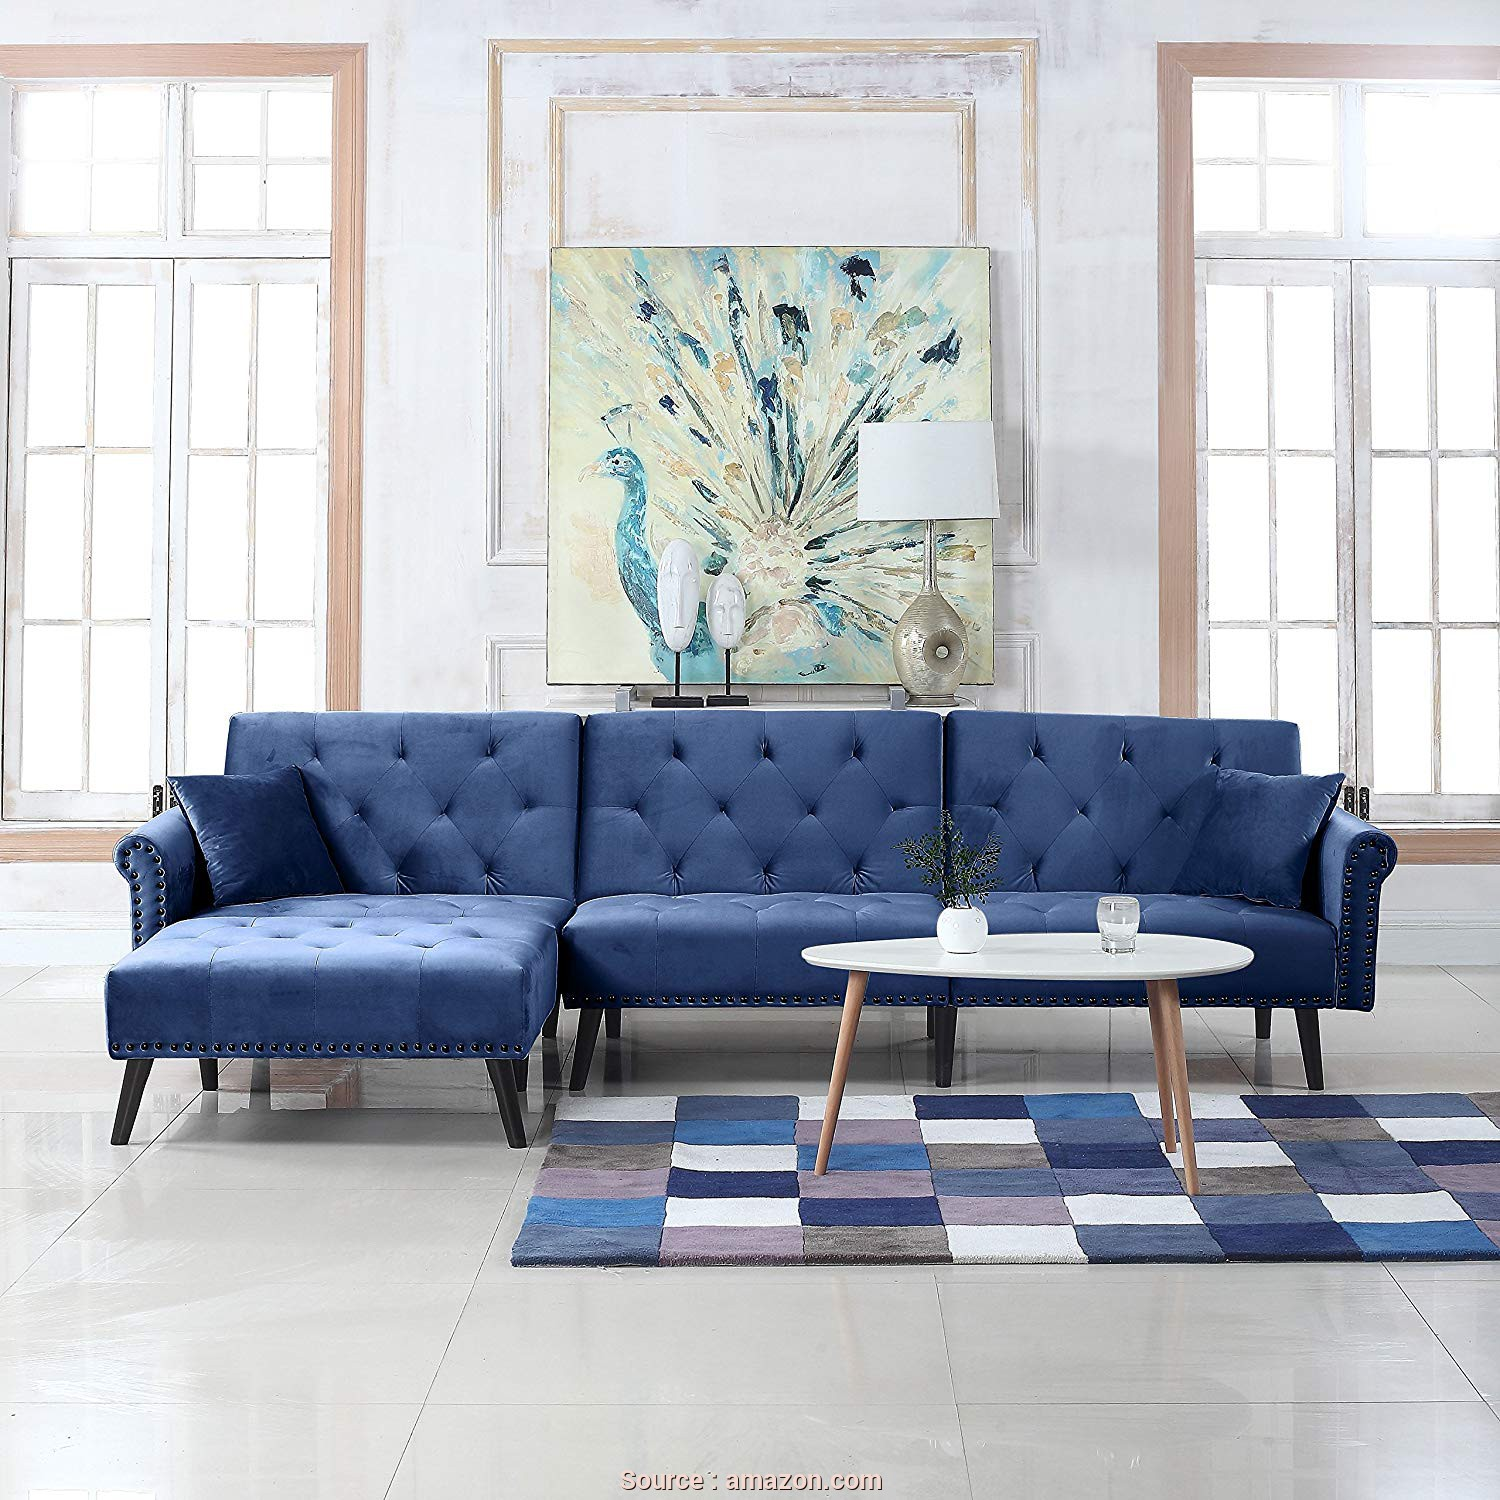 Amazon Copricuscini Divano, Superiore Divano Roma Furniture, Century Modern Style Velvet Sleeper Futon Sofa, Living Room L Shape Sectional Couch With Reclining Backrest, Chaise Lounge